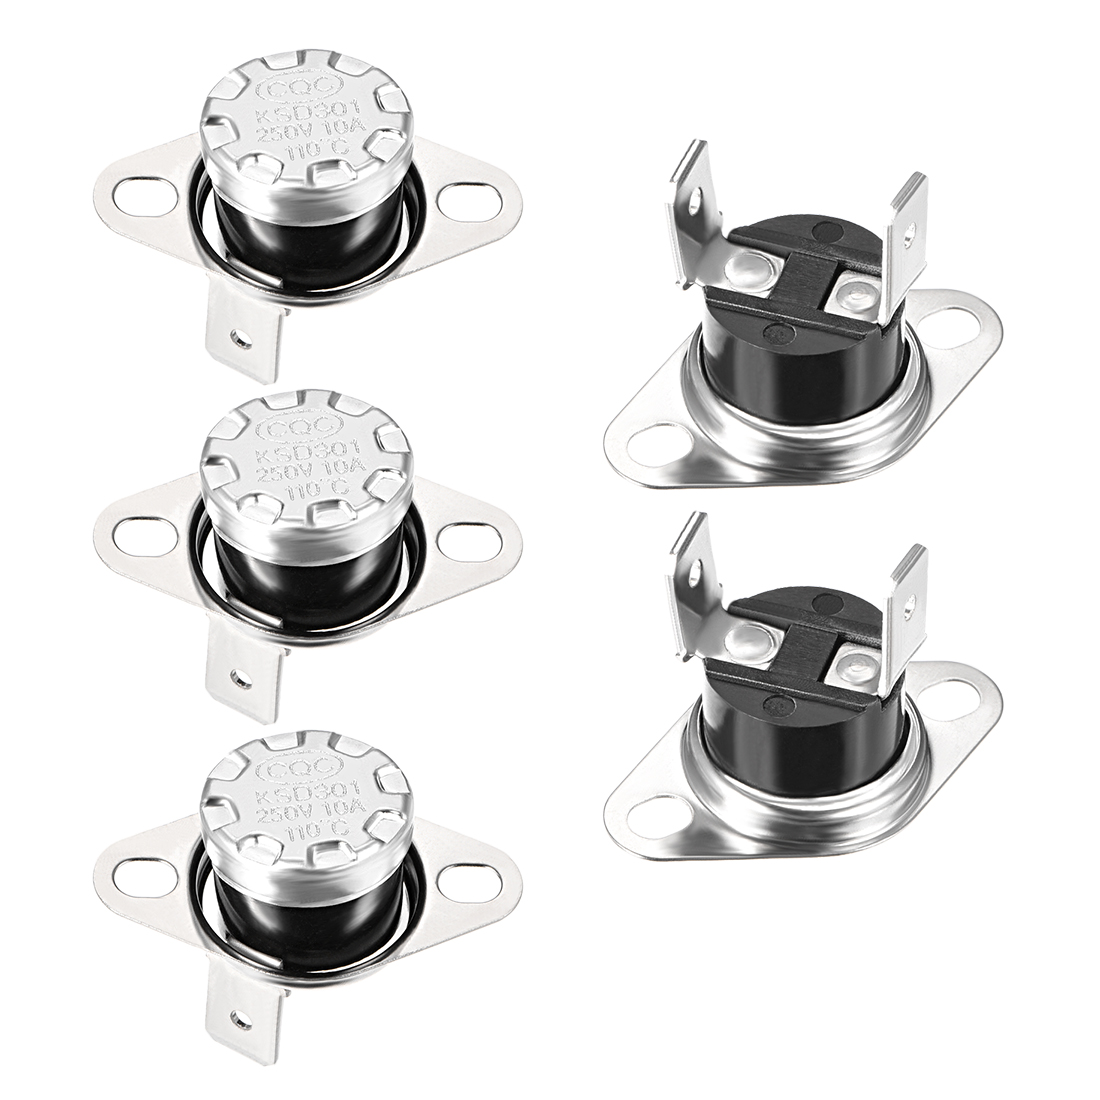 Temperature Control Switch Thermostat110掳C 10A Normally Closed N.C 5pcs - image 4 de 4